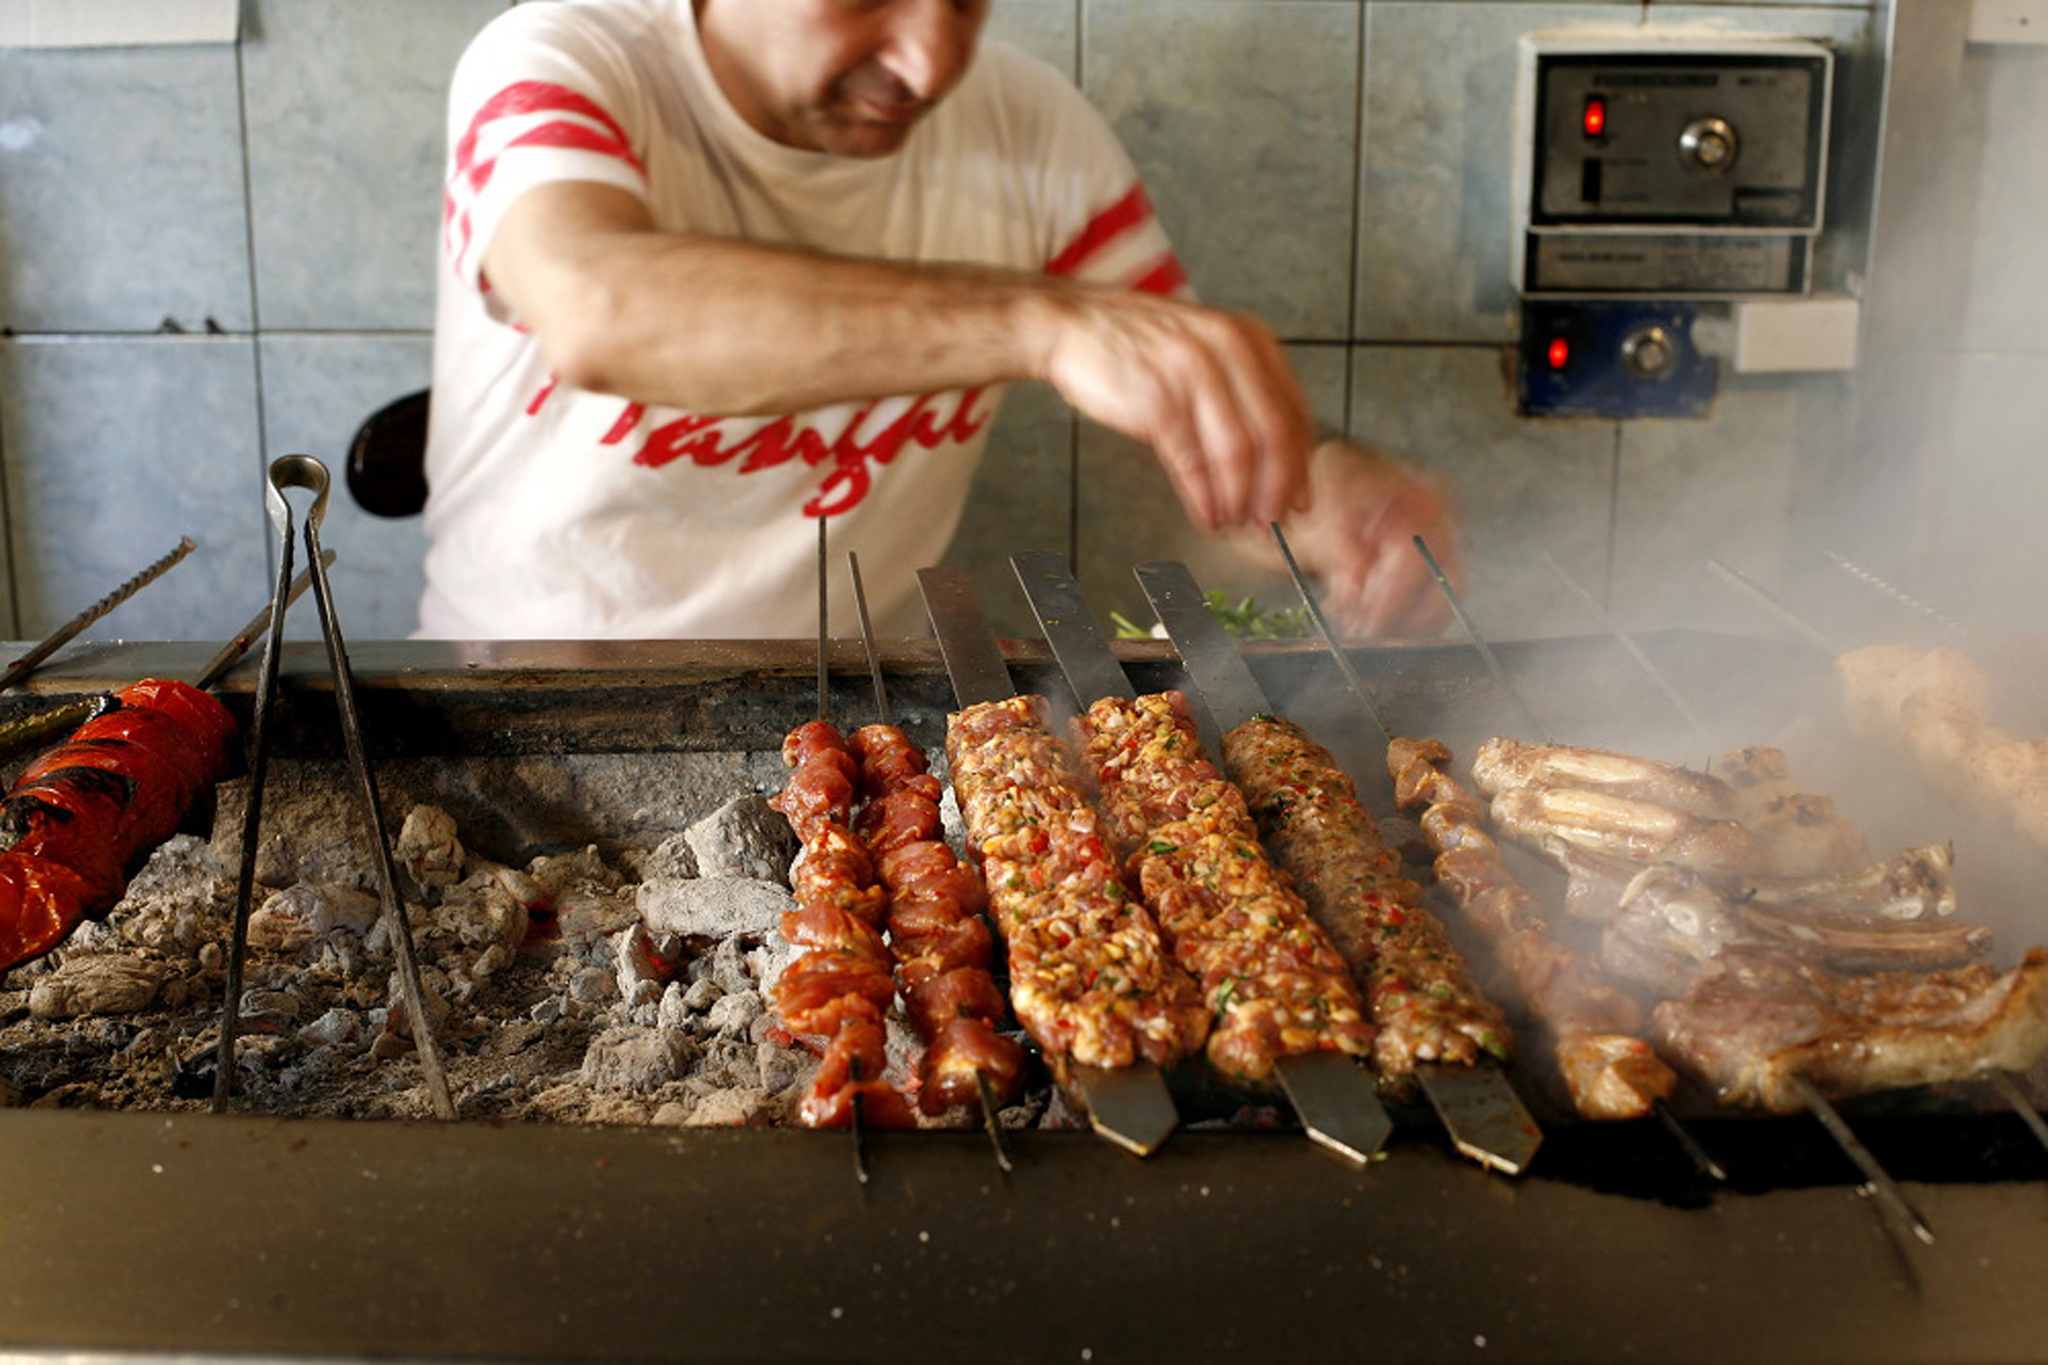 London's best restaurants for kebabs